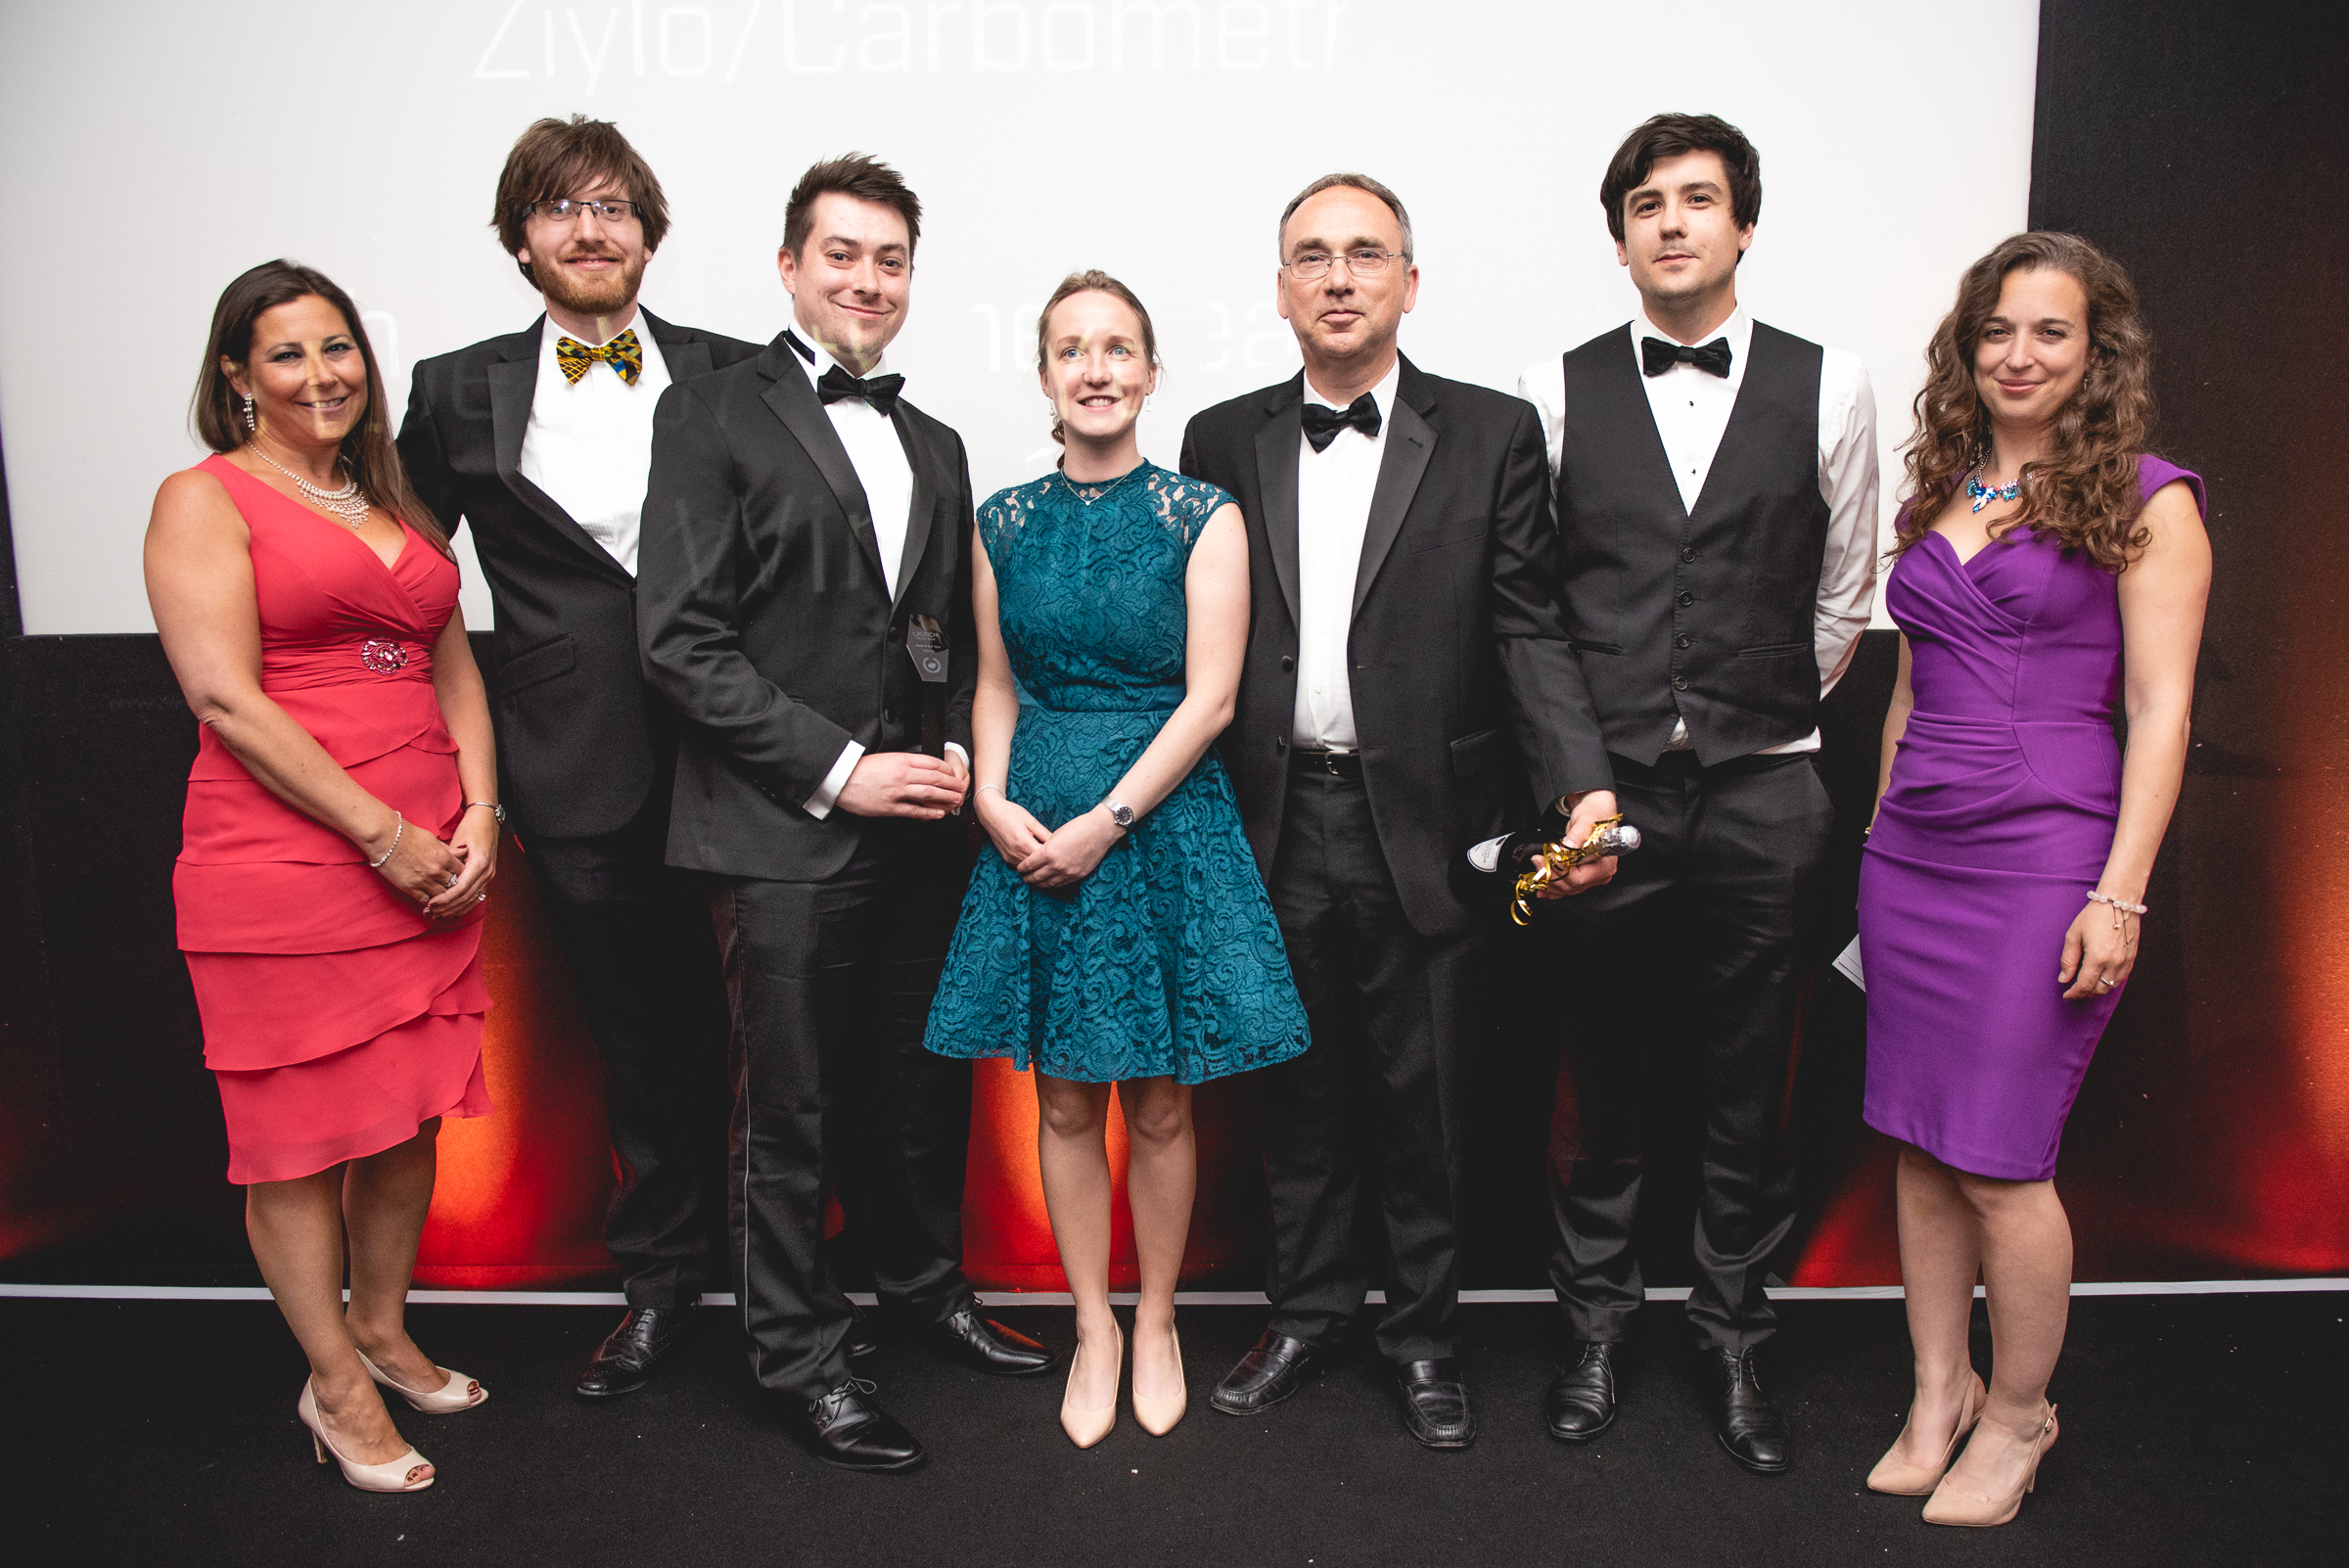 Ziylo/Carbometrics Team, winners of the Deal of the Year Award, sponsored by TLT  L to R; Nina Searle,  Dr Mike Tompsett, Dr Robert Tromans, Dr Miriam Wilson, Dr Mike Orchard, Dr Harry Destecroix,  Dr Emily Grossman